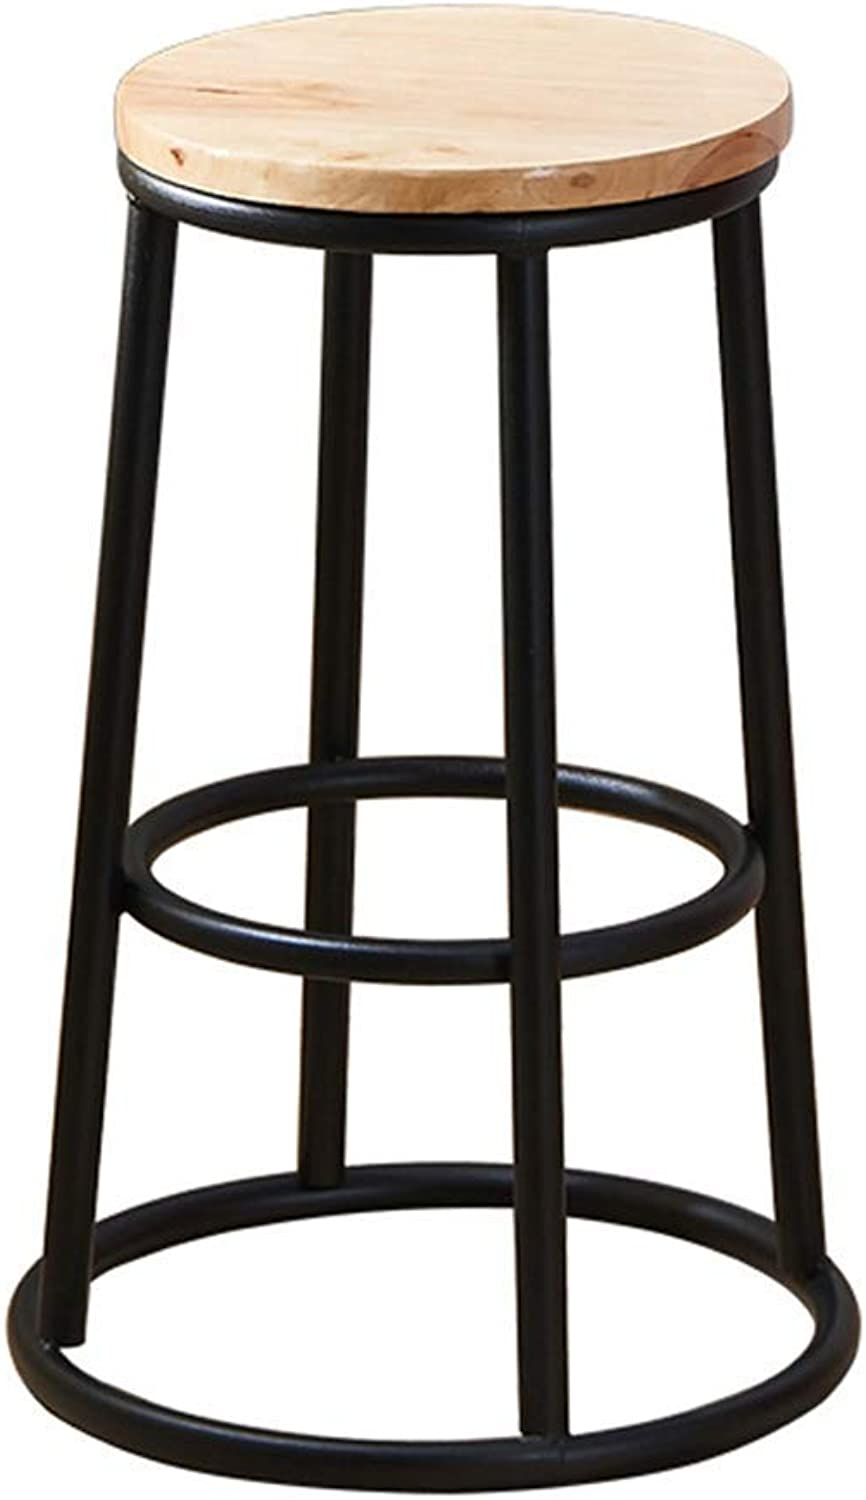 LLYU Bar Stool, Vintage Solid Wood Industrial Wrought Iron Bracket, Kitchen Dining Chair high Stool, Suitable for Restaurant Tavern (color   Wood color, Size   45CM)